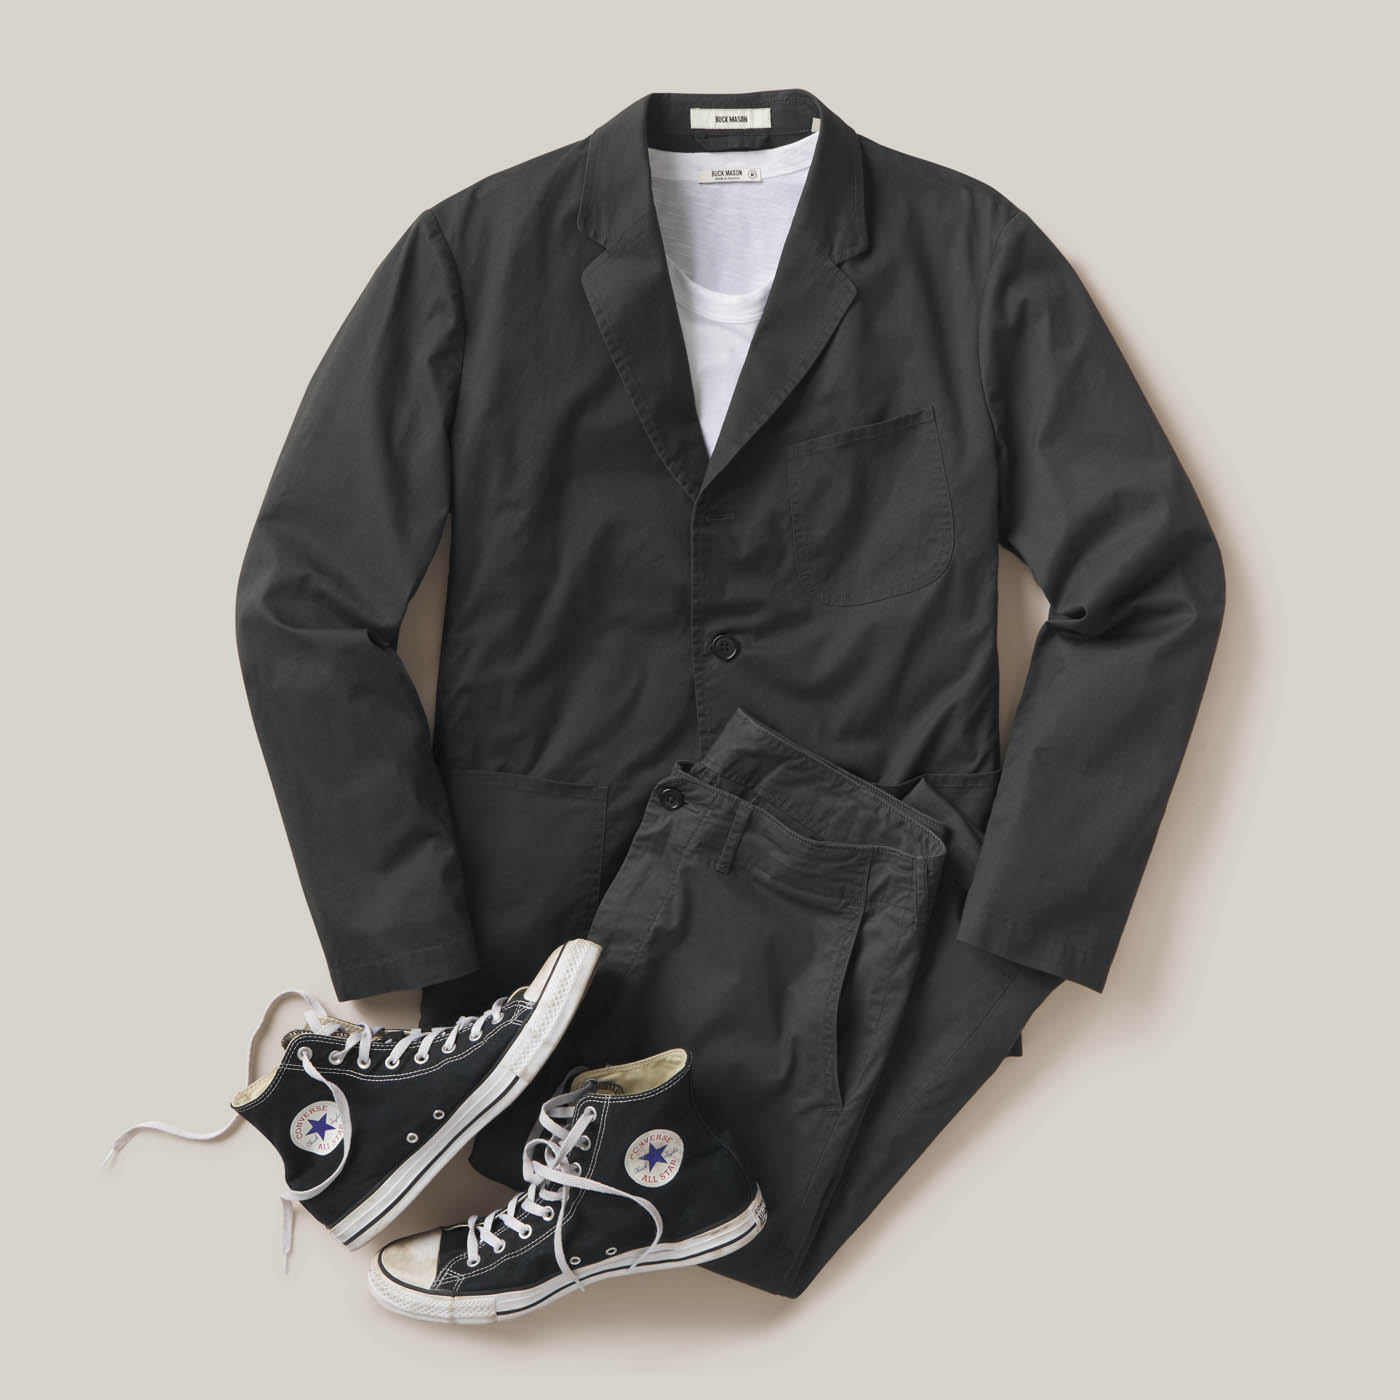 buck-mason-damion-lloyd-commercial-photography-product-clothing-editorial-overhead-pants-shirt-jacket-converse-outfit-black-jean-denim